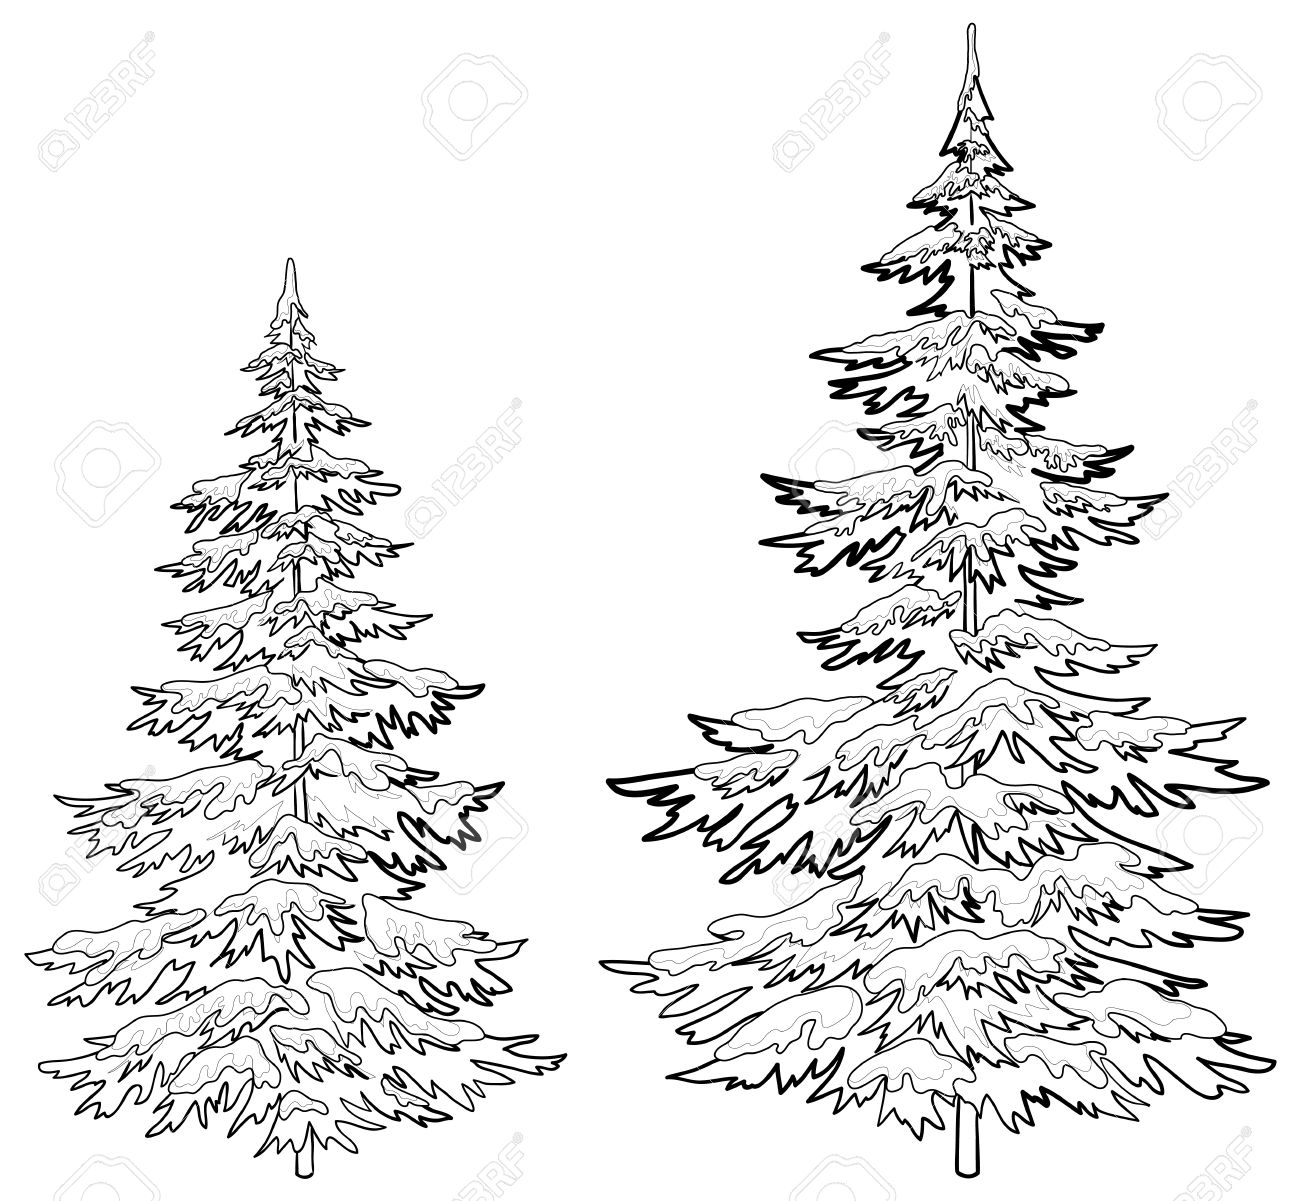 Vector, Christmas Trees Under Snow On A White Background, Contours ...